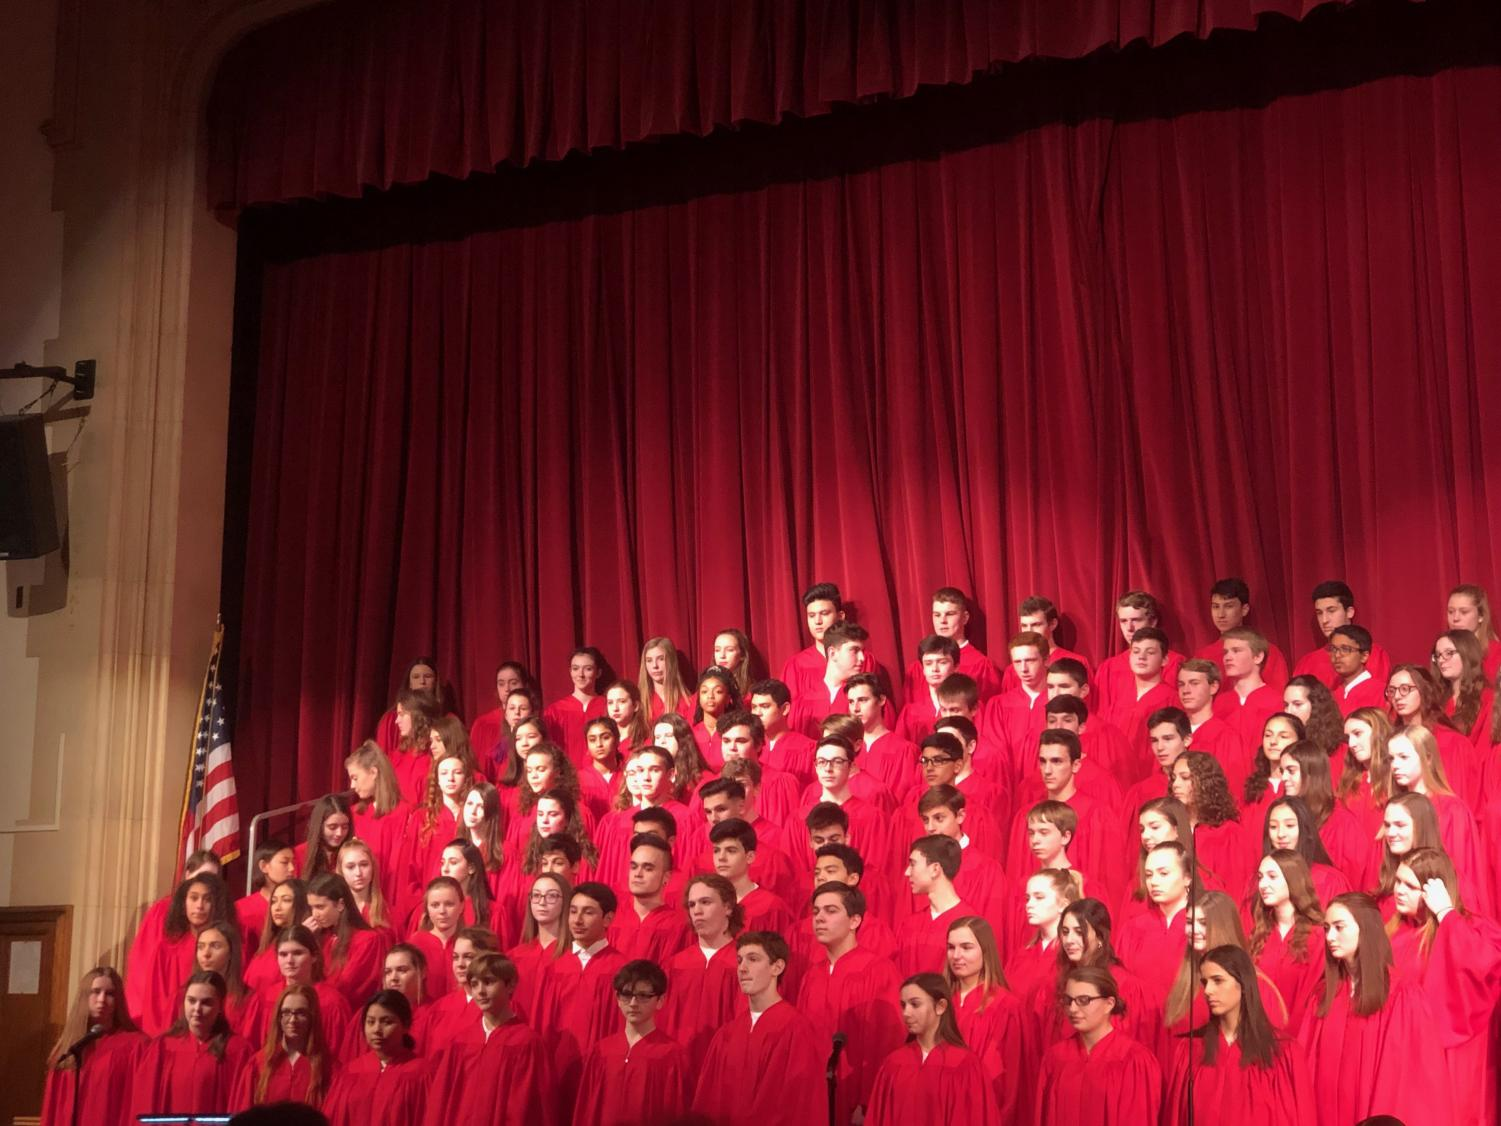 The concert choir cheerfully performing